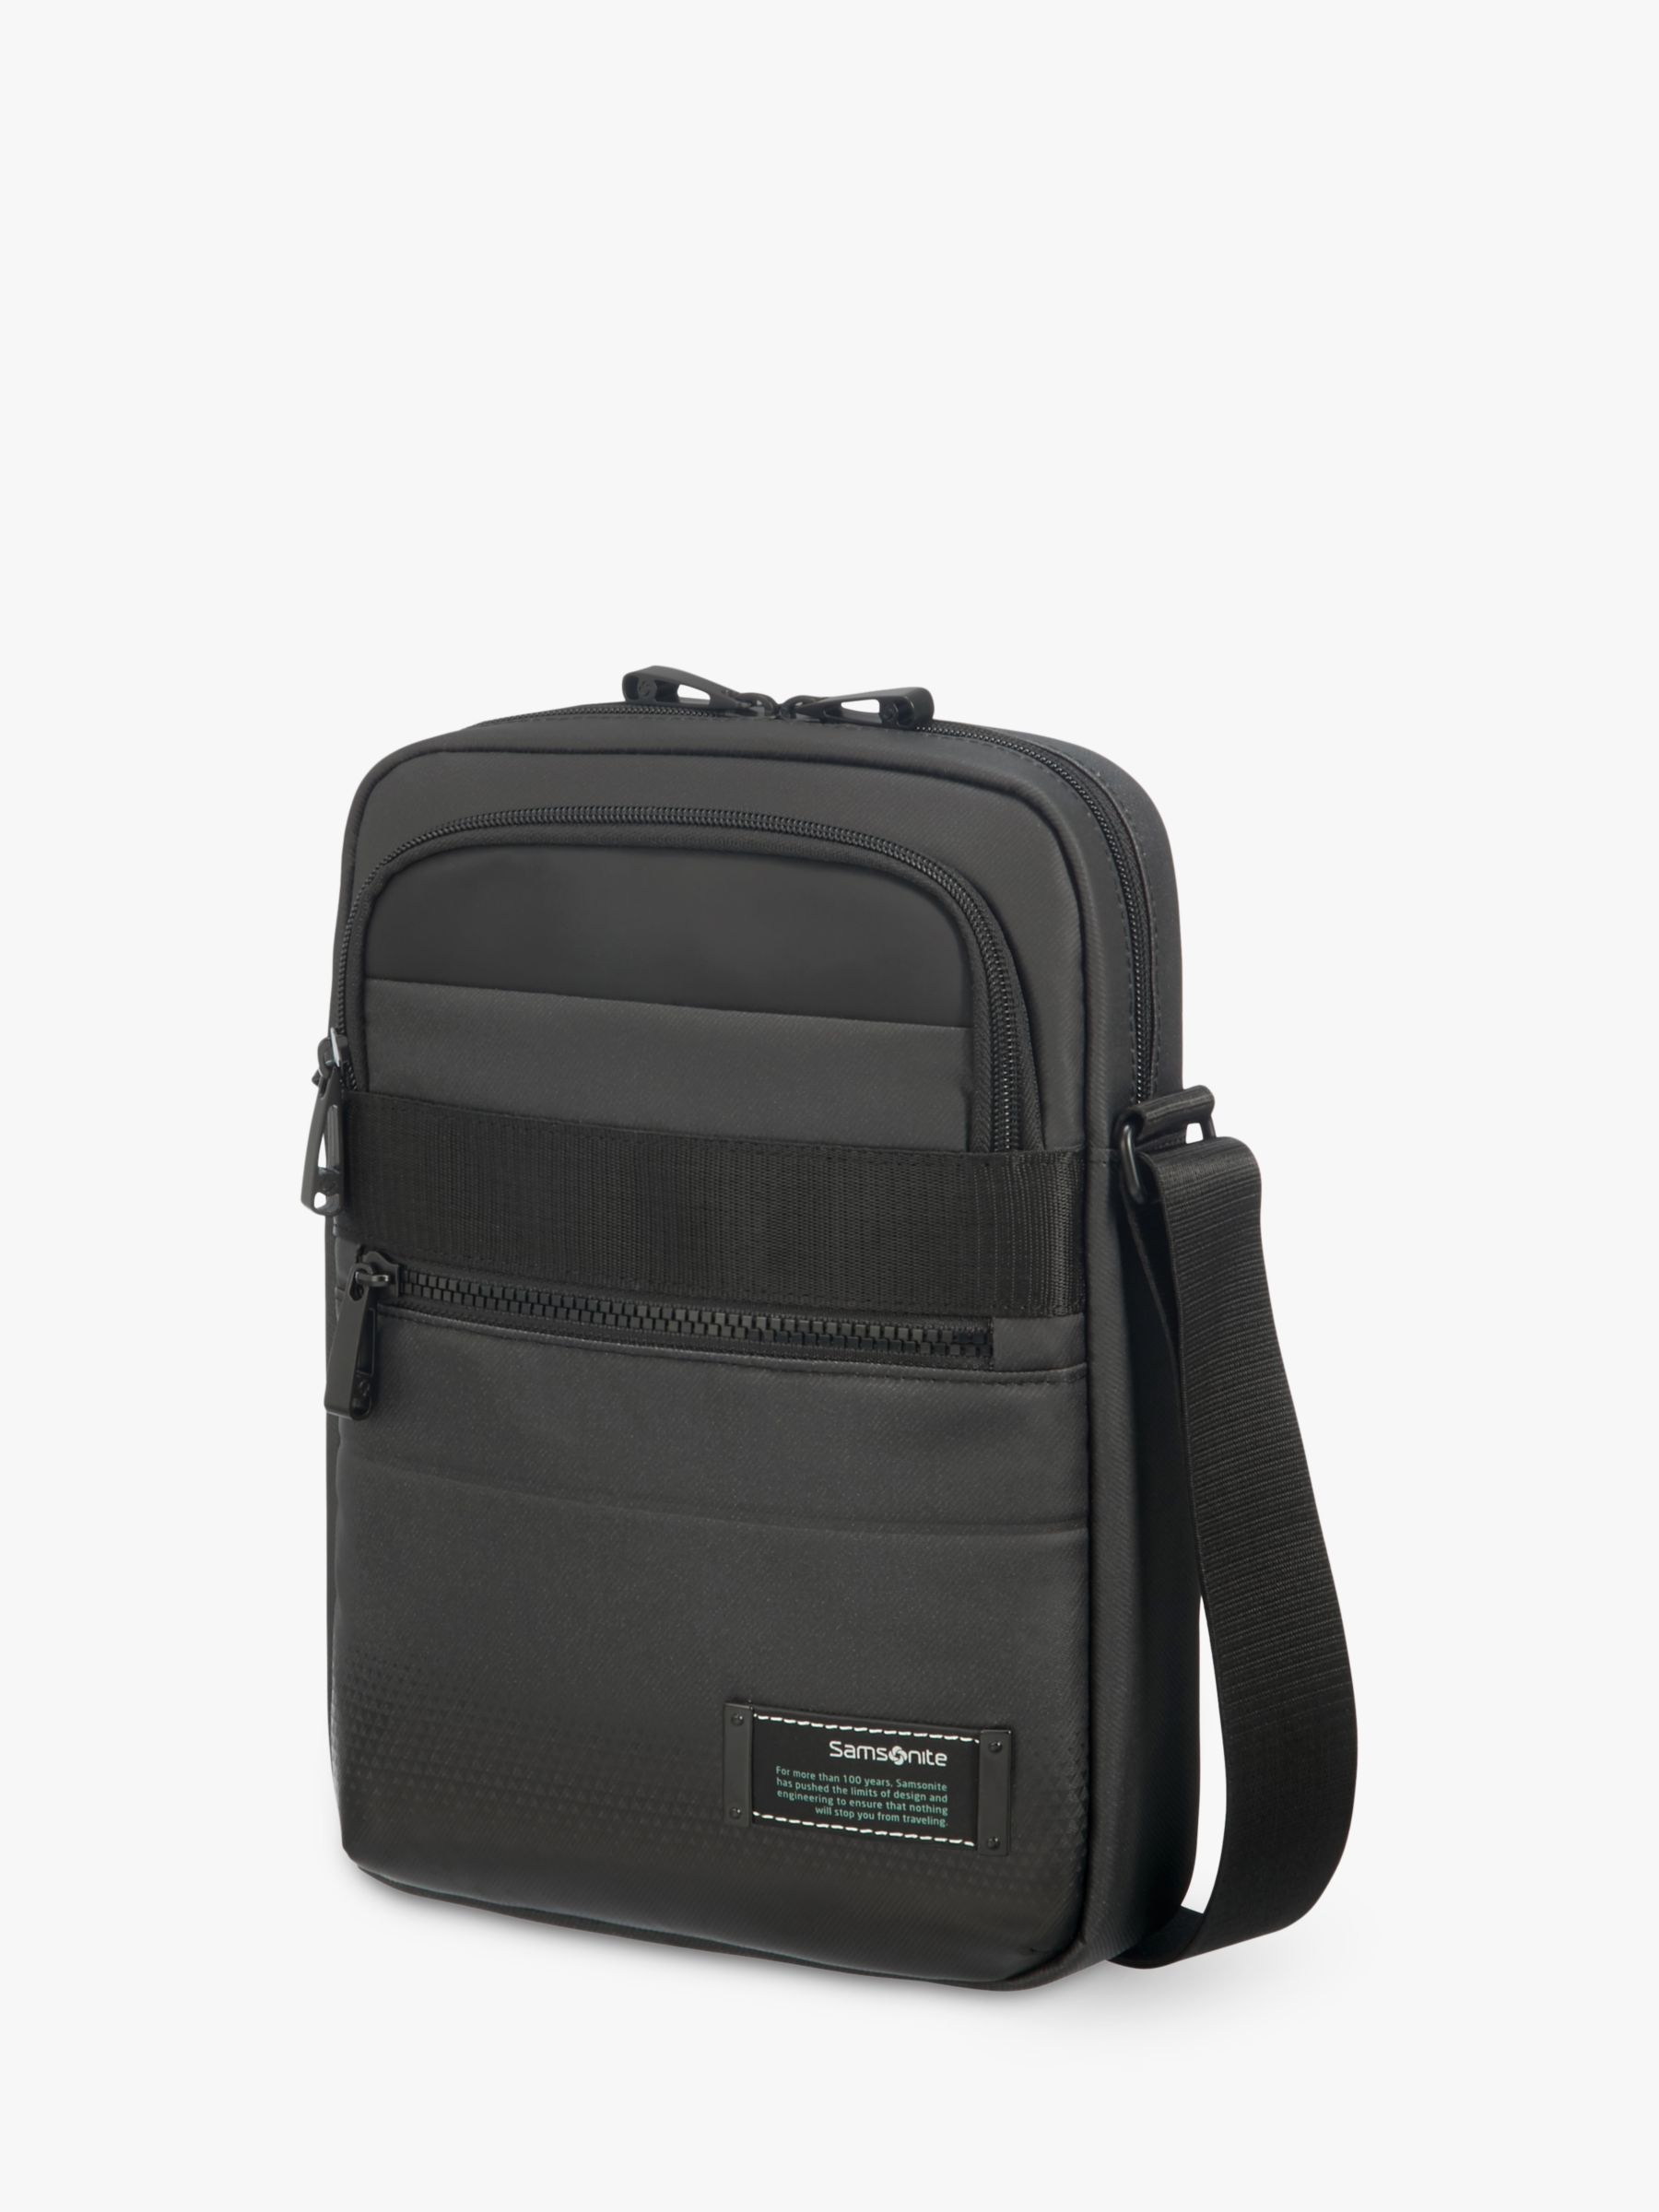 Samsonite Samsonite Cityvibe 2.0 Tablet Cross Body Bag, Jet Black